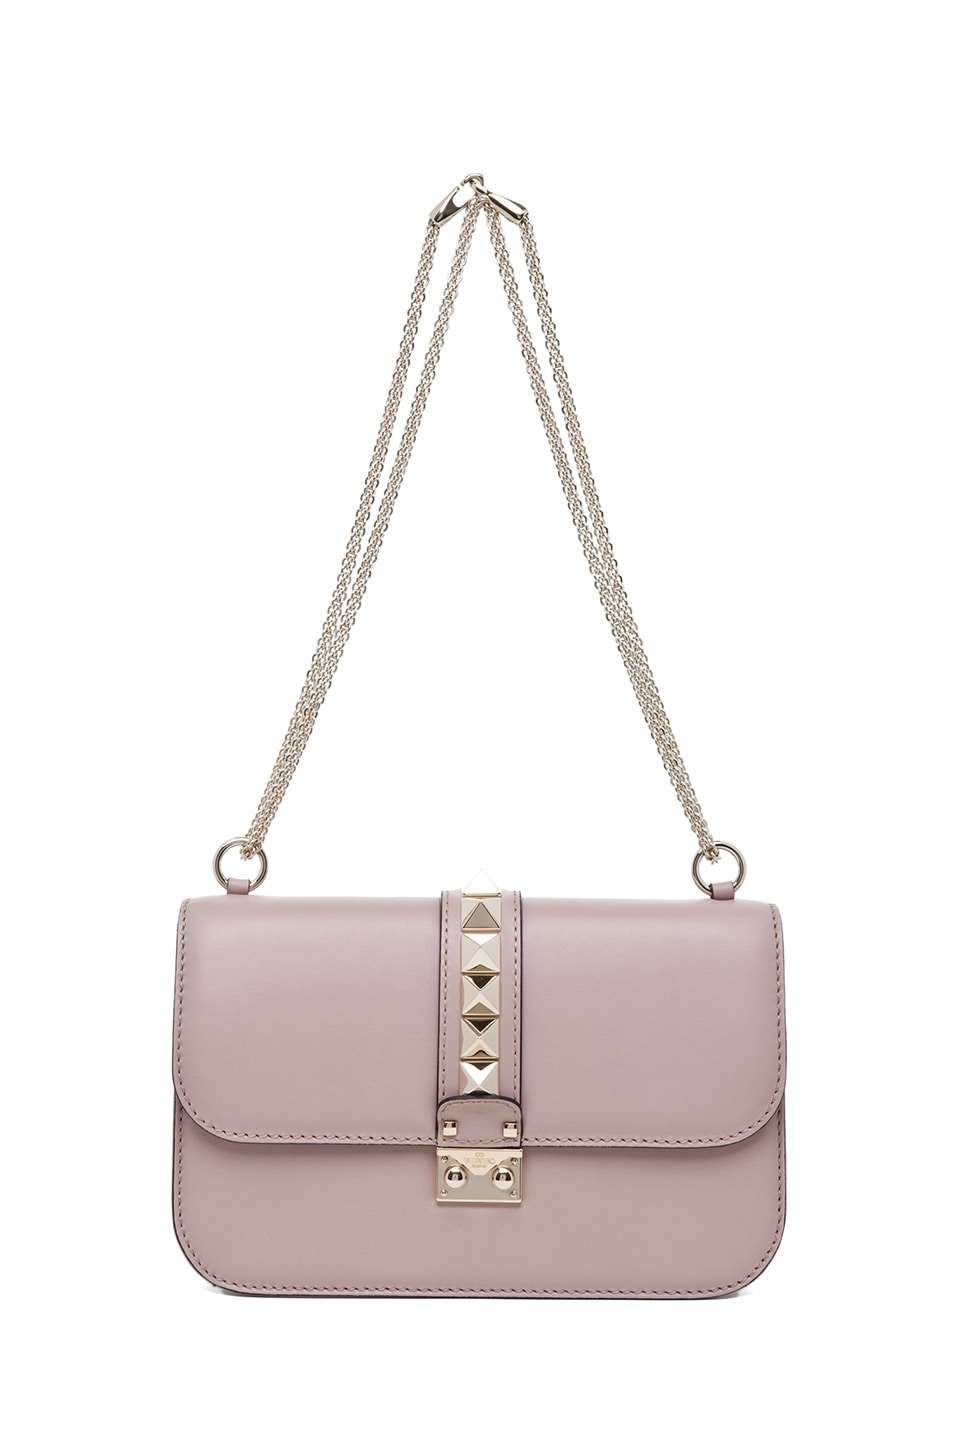 Image 5 of Valentino Medium Lock Flap Bag in Poudre